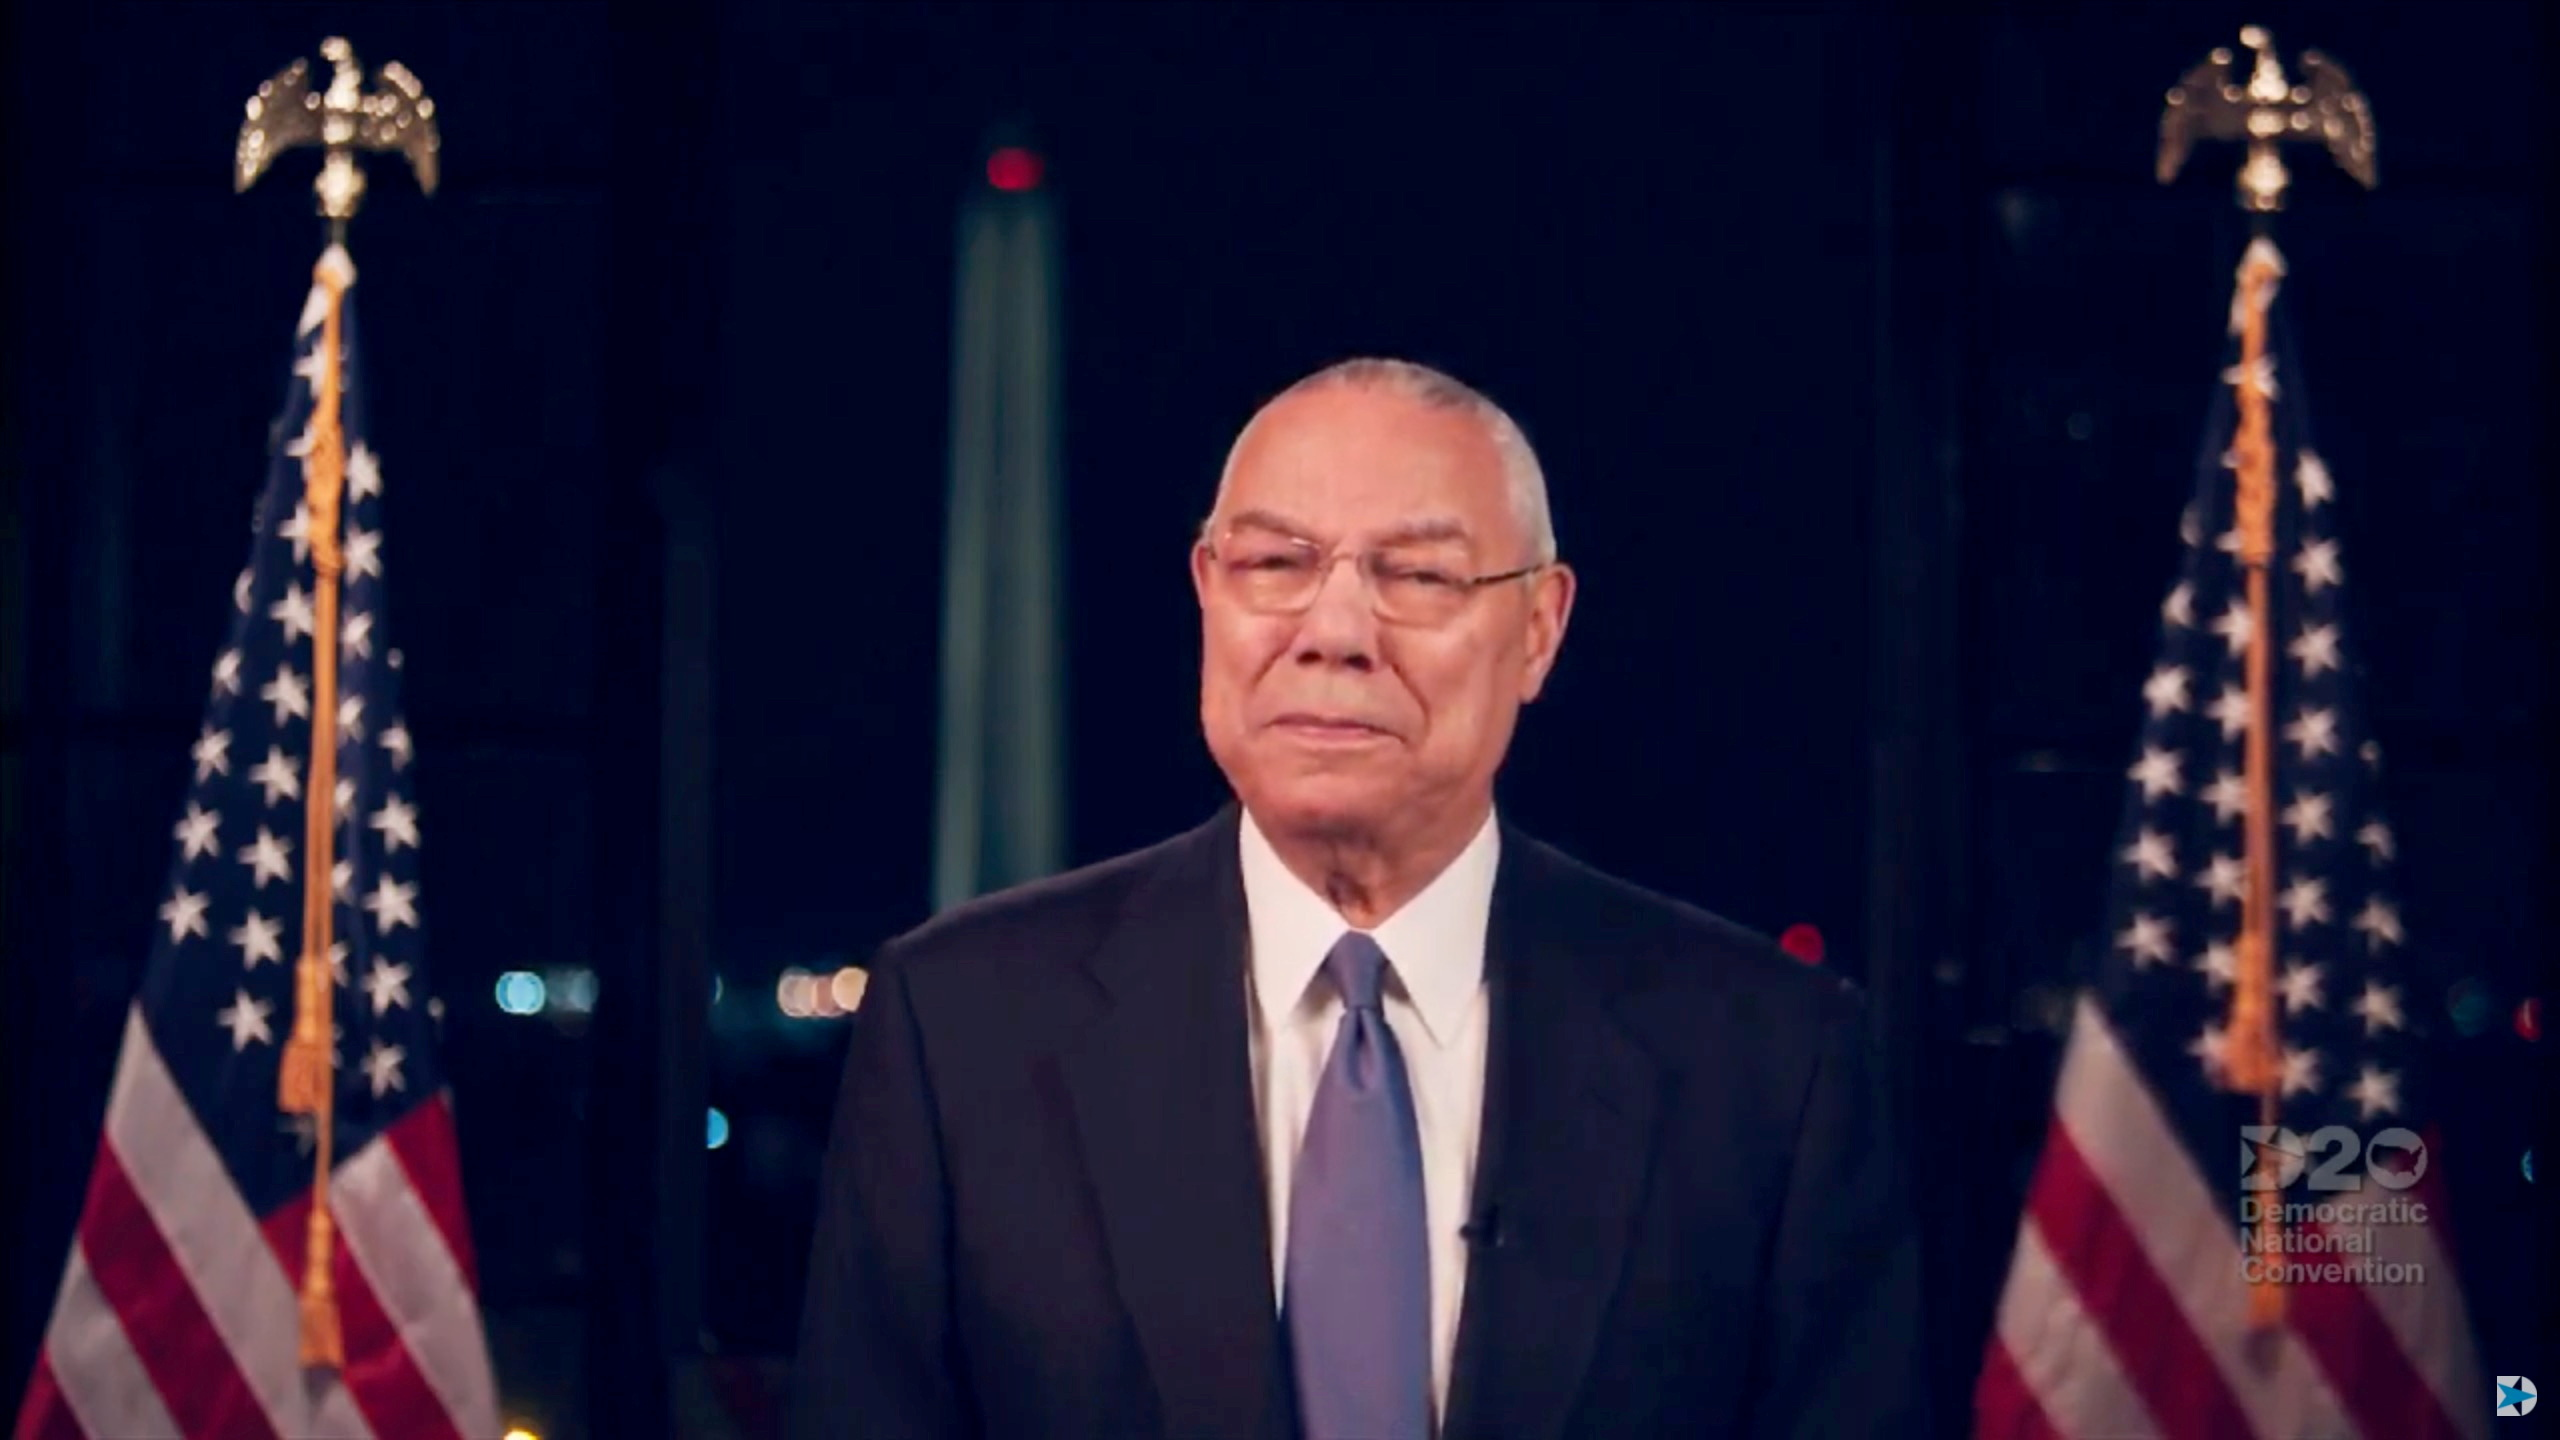 Former U.S. Secretary of State Colin Powell speaks by video feed during the virtual 2020 Democratic National Convention as participants from across the country are hosted over video links from the originally planned site of the convention in Milwaukee, Wisconsin, U.S. August 18, 2020. 2020 Democratic National Convention/Pool via REUTERS